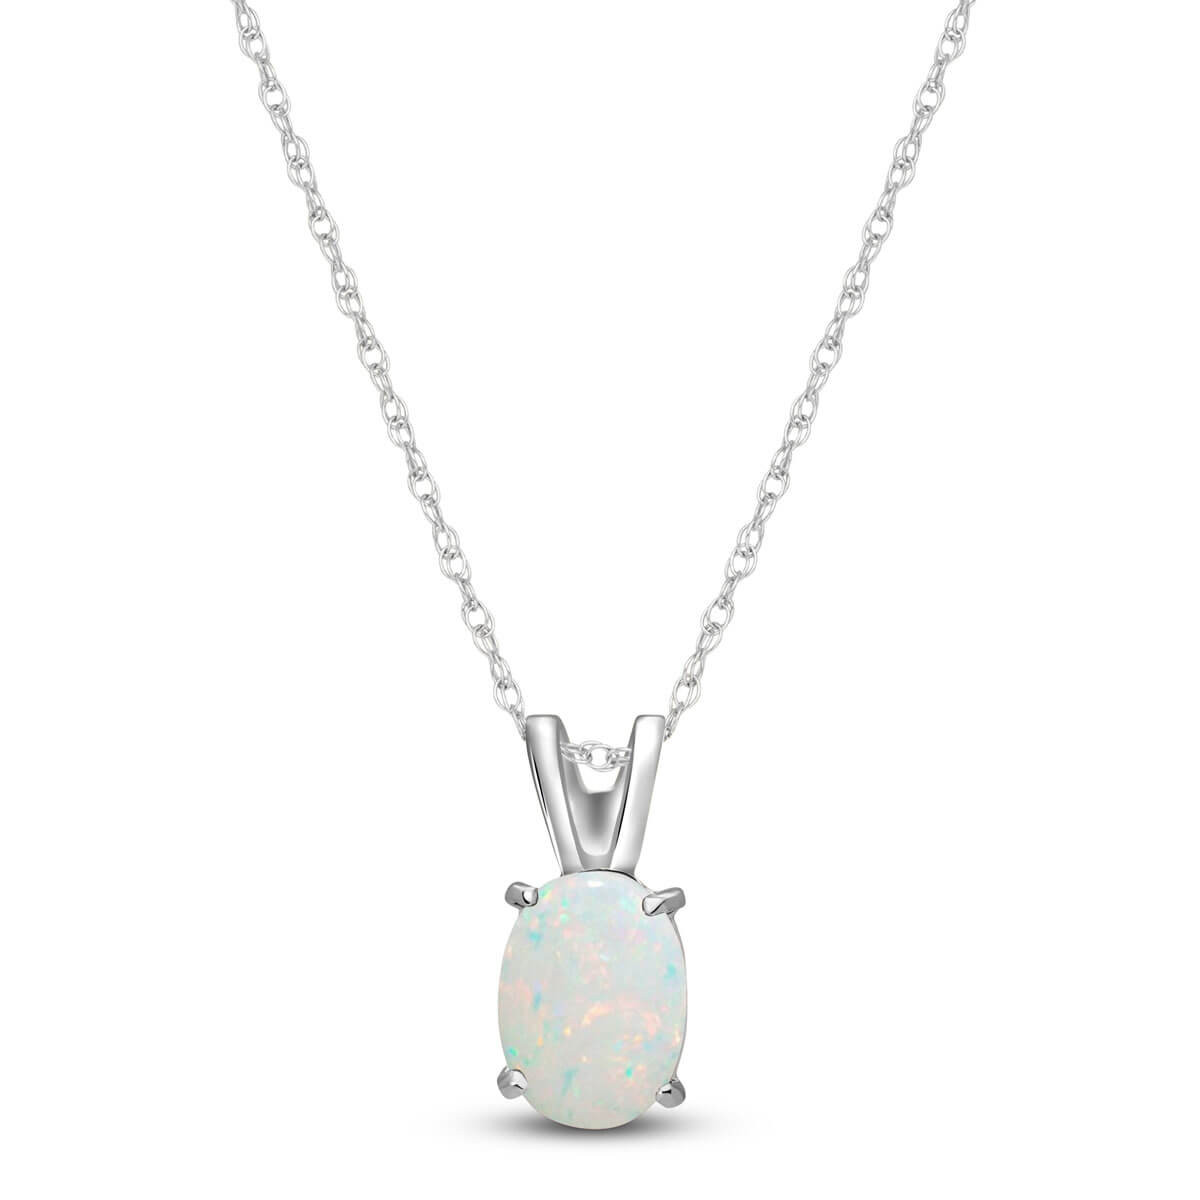 9ct White Gold Oval Turquoise necklace Pendant no chain Gift Boxed Made in UK